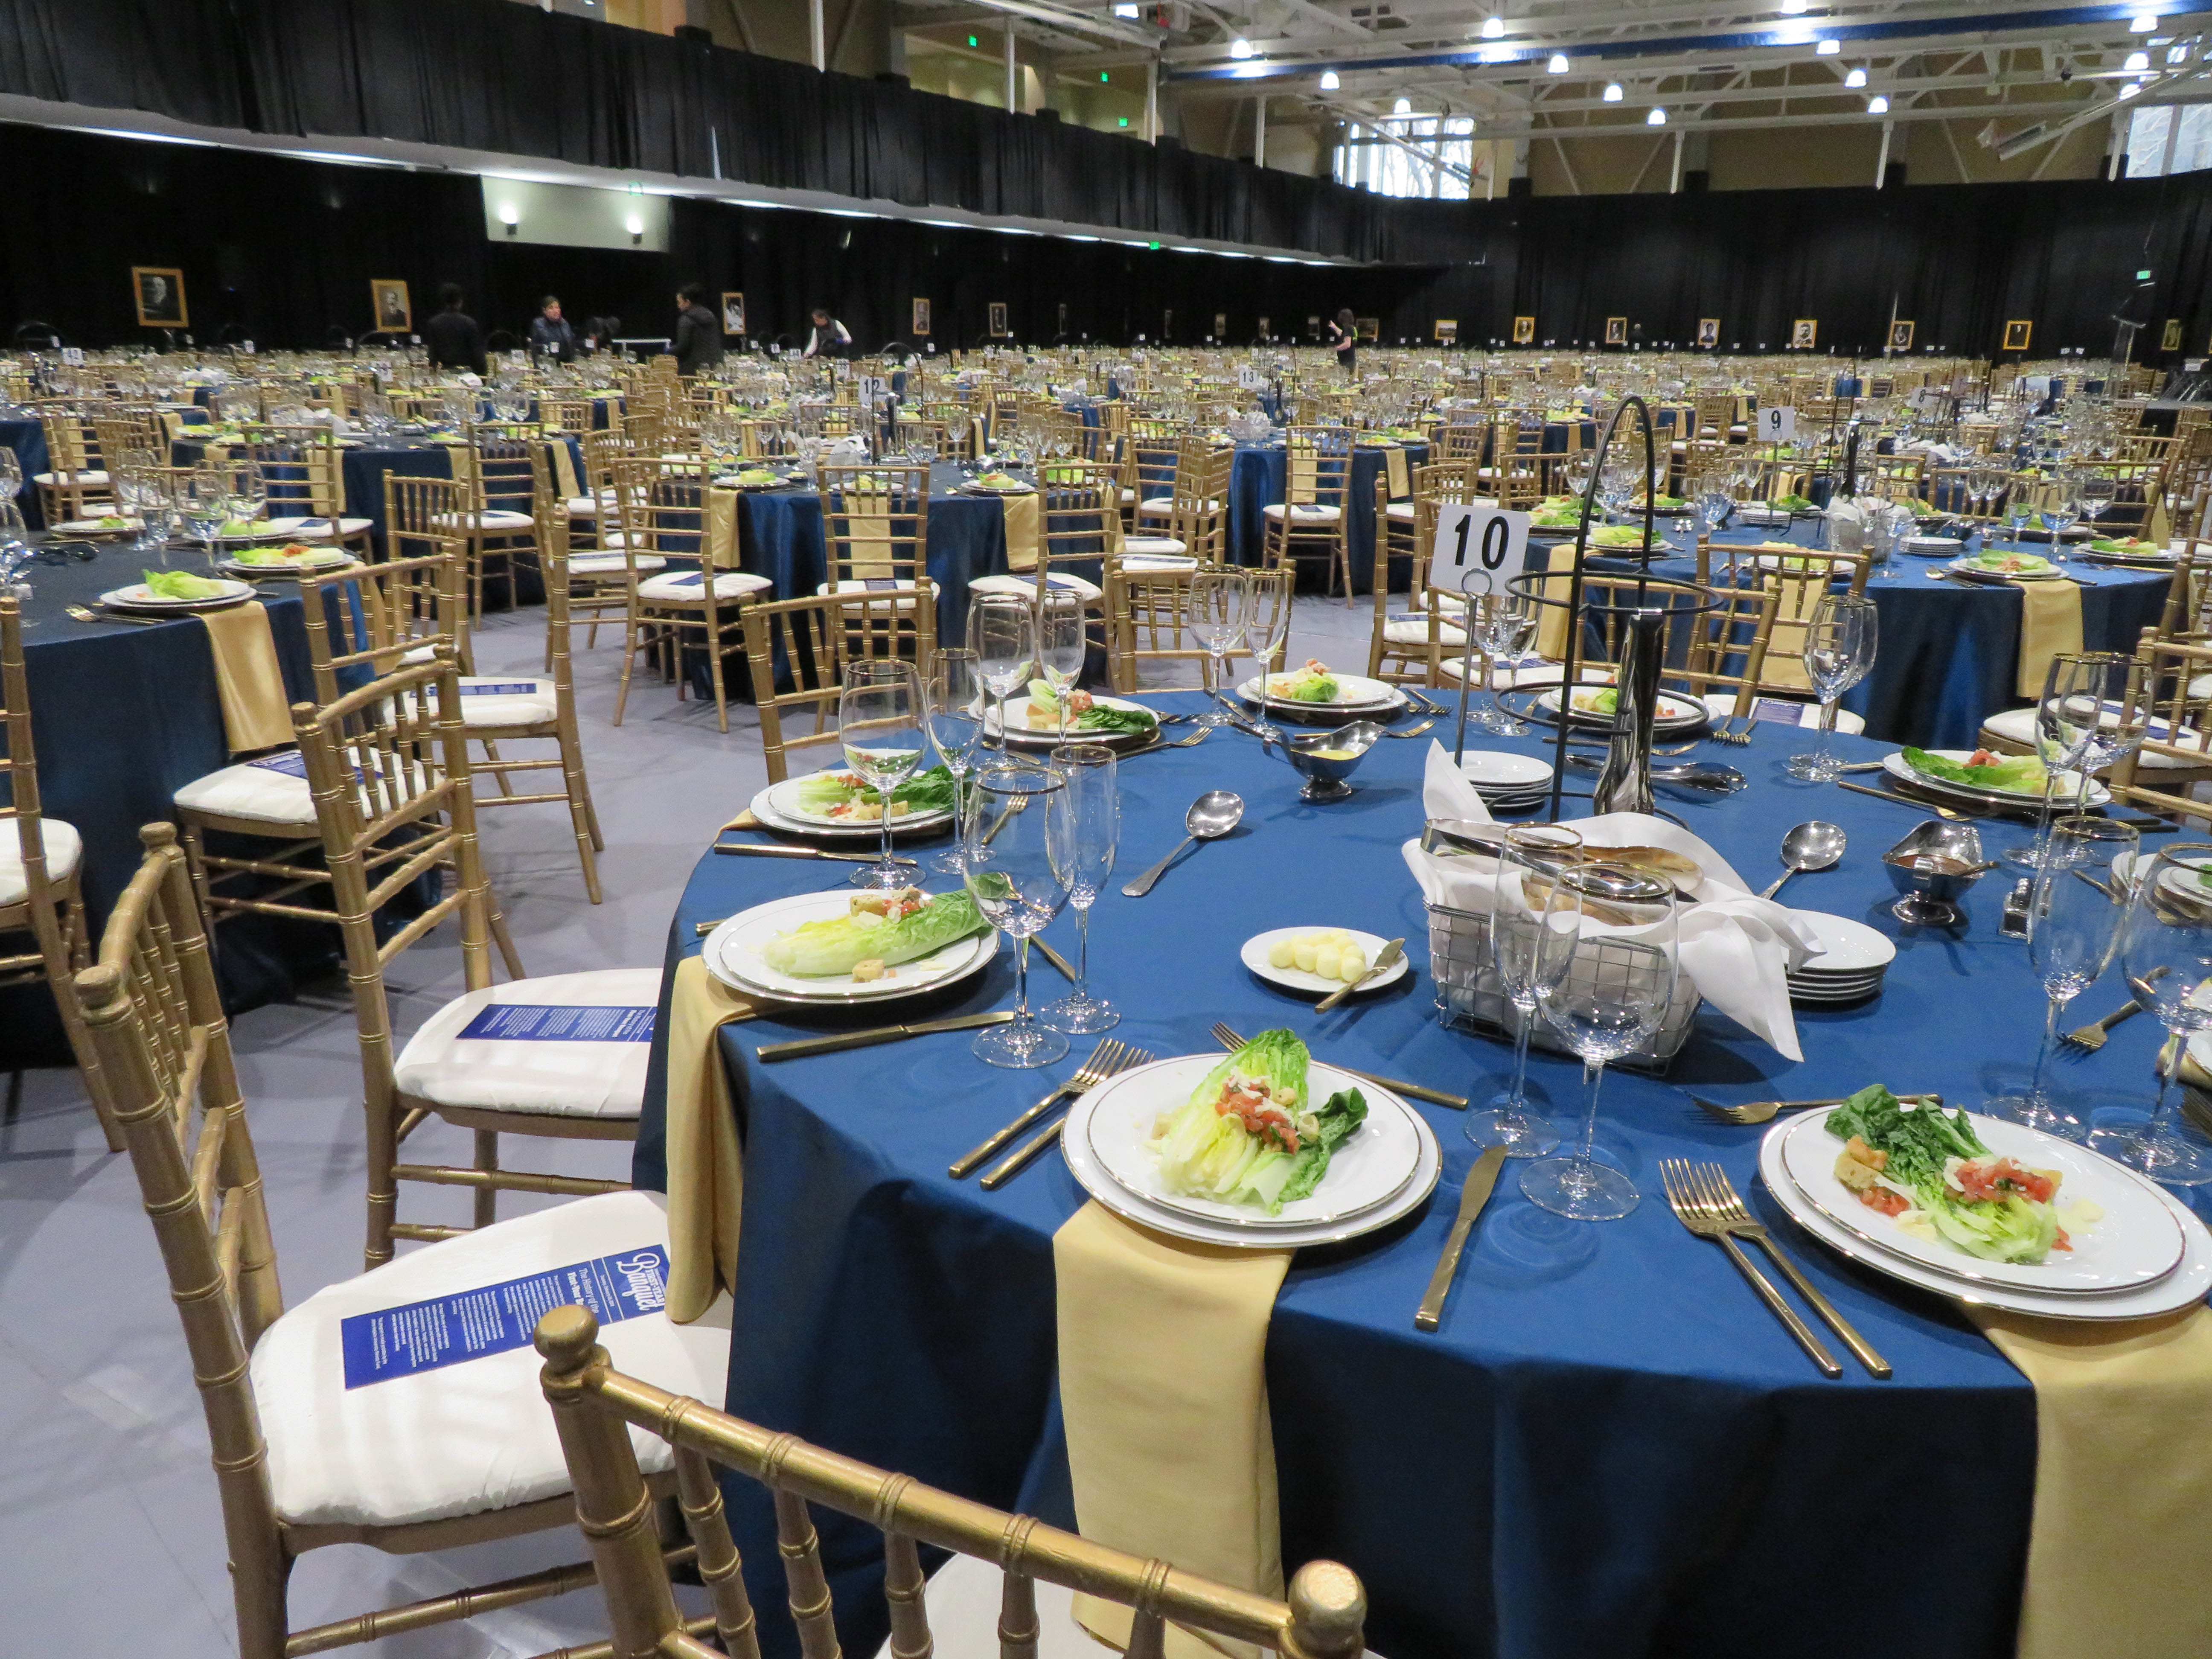 A view of the decorated tables and place settings at the First-Year Banquet.